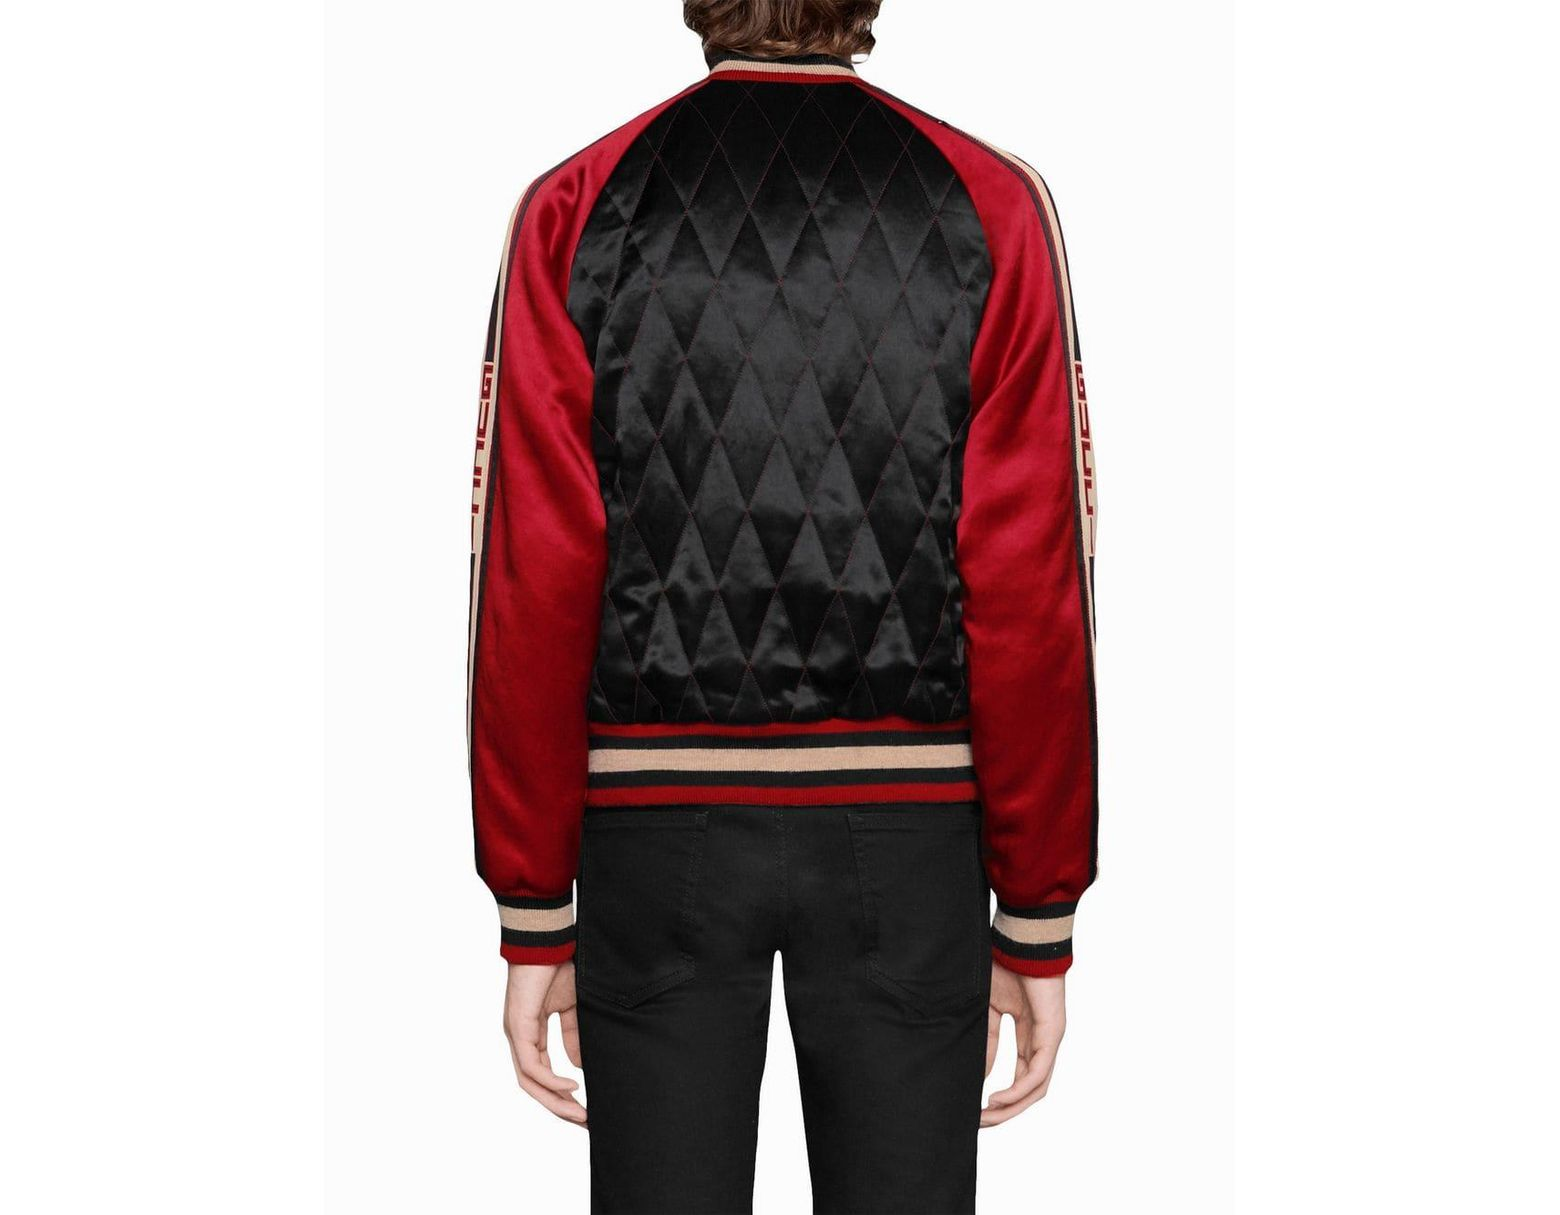 4e3bbdce4 Gucci Reversible Acetate Bomber Jacket in Red for Men - Save 23% - Lyst